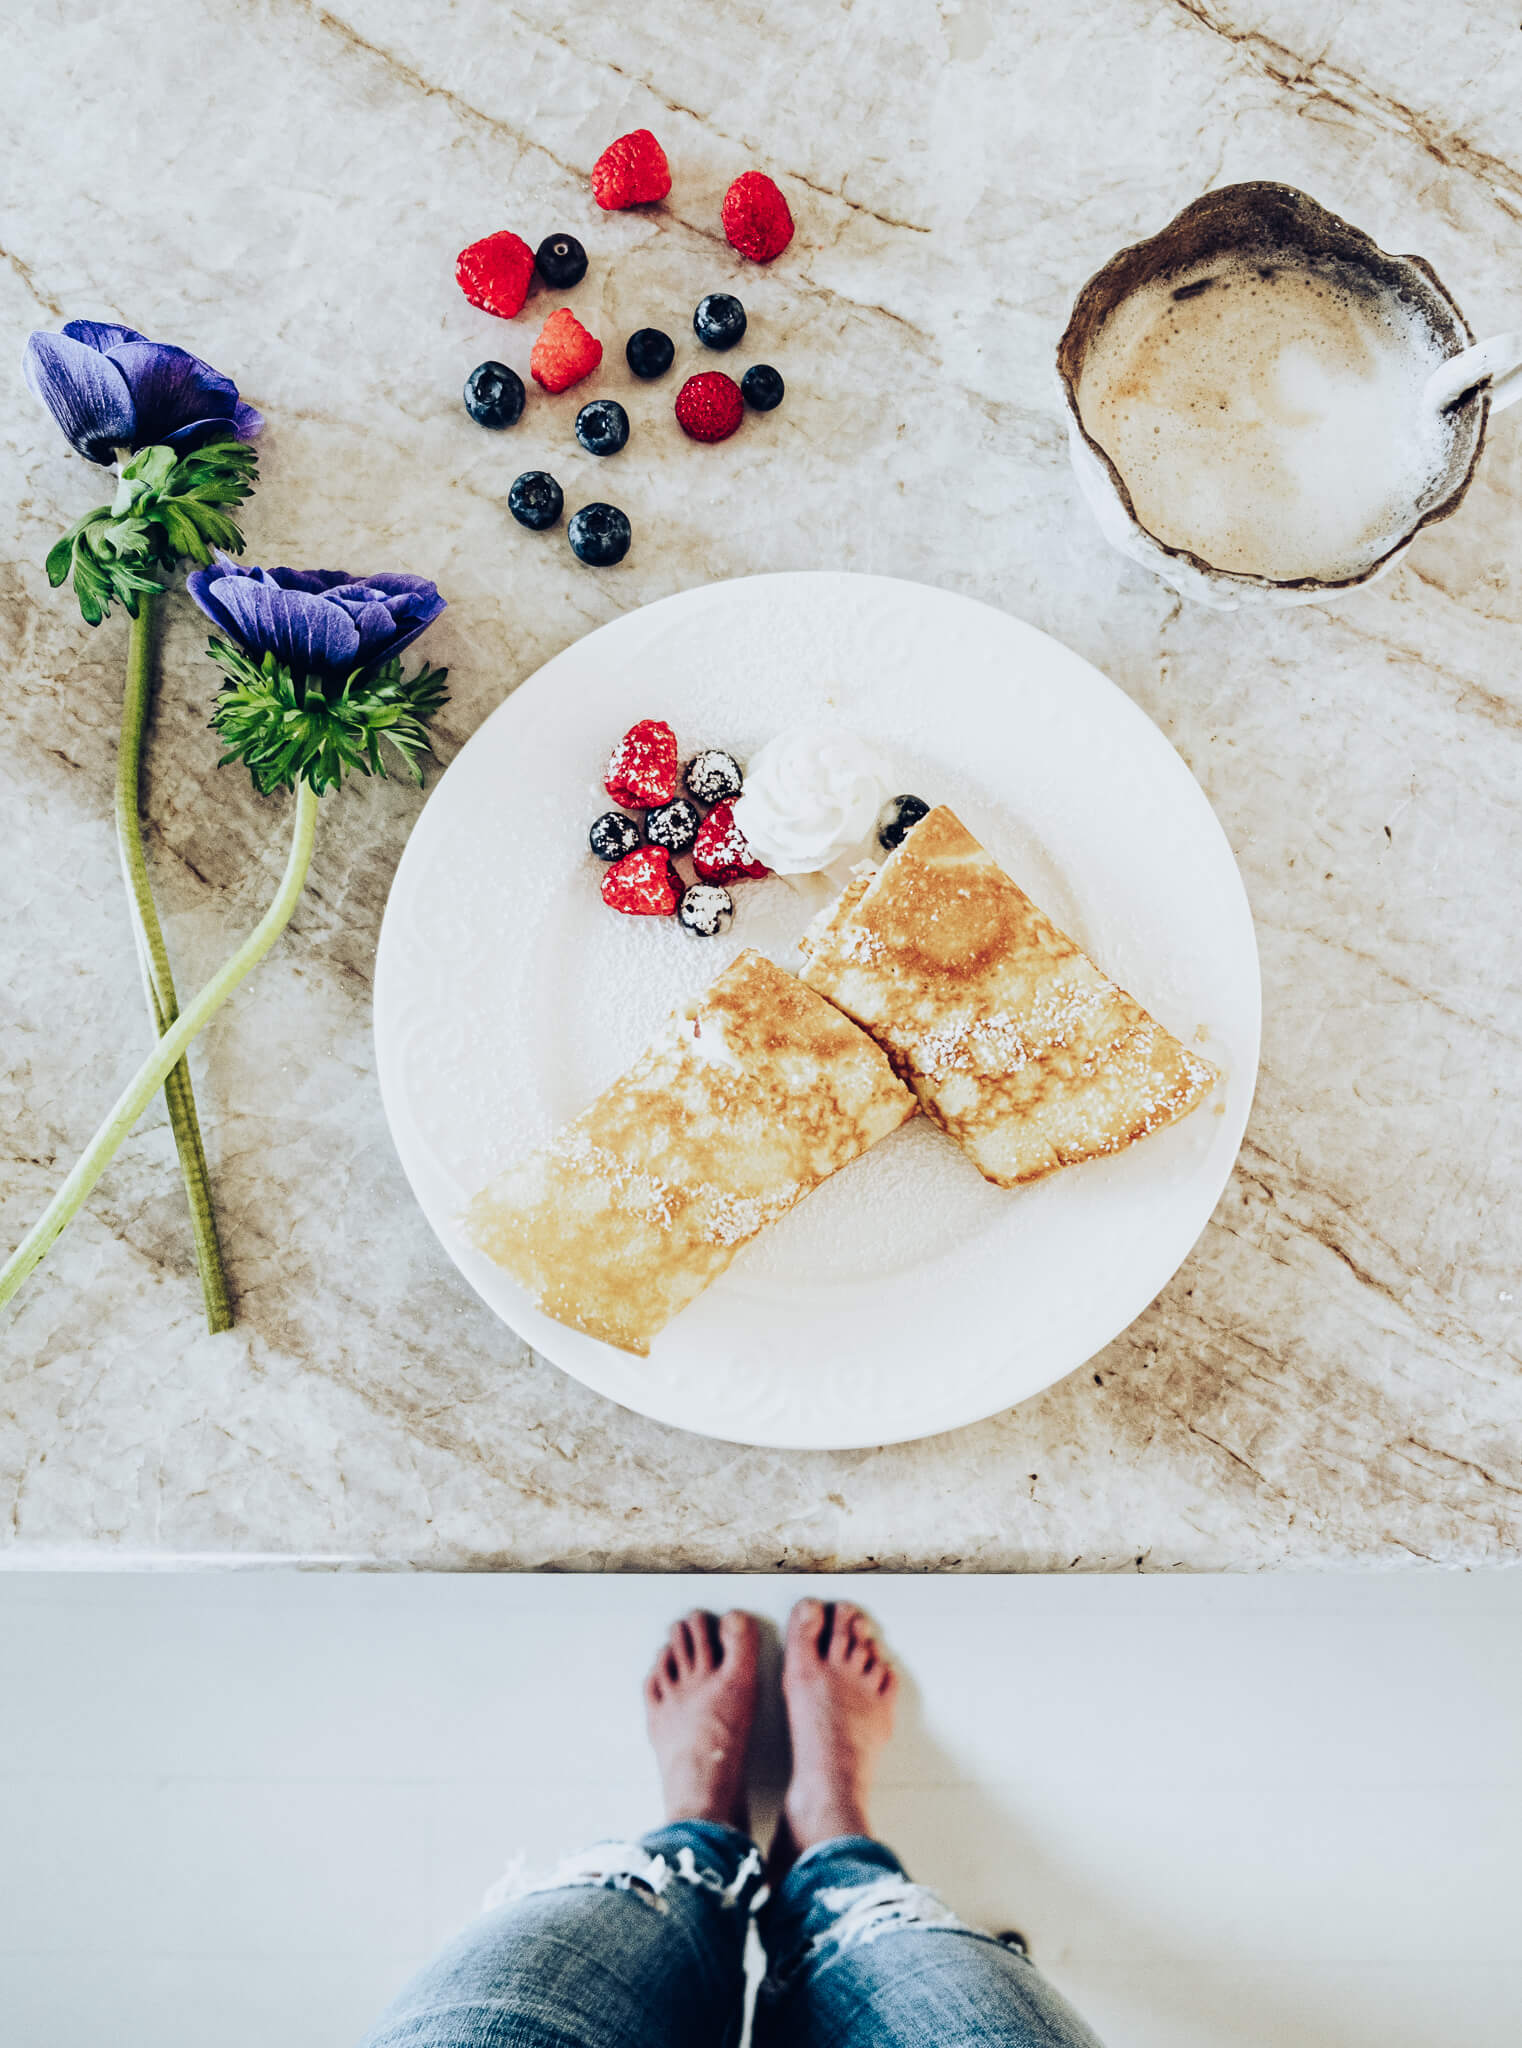 Easy from scratch French crepes perfectly plated for Mother's Day Gifts Breakfast in bed